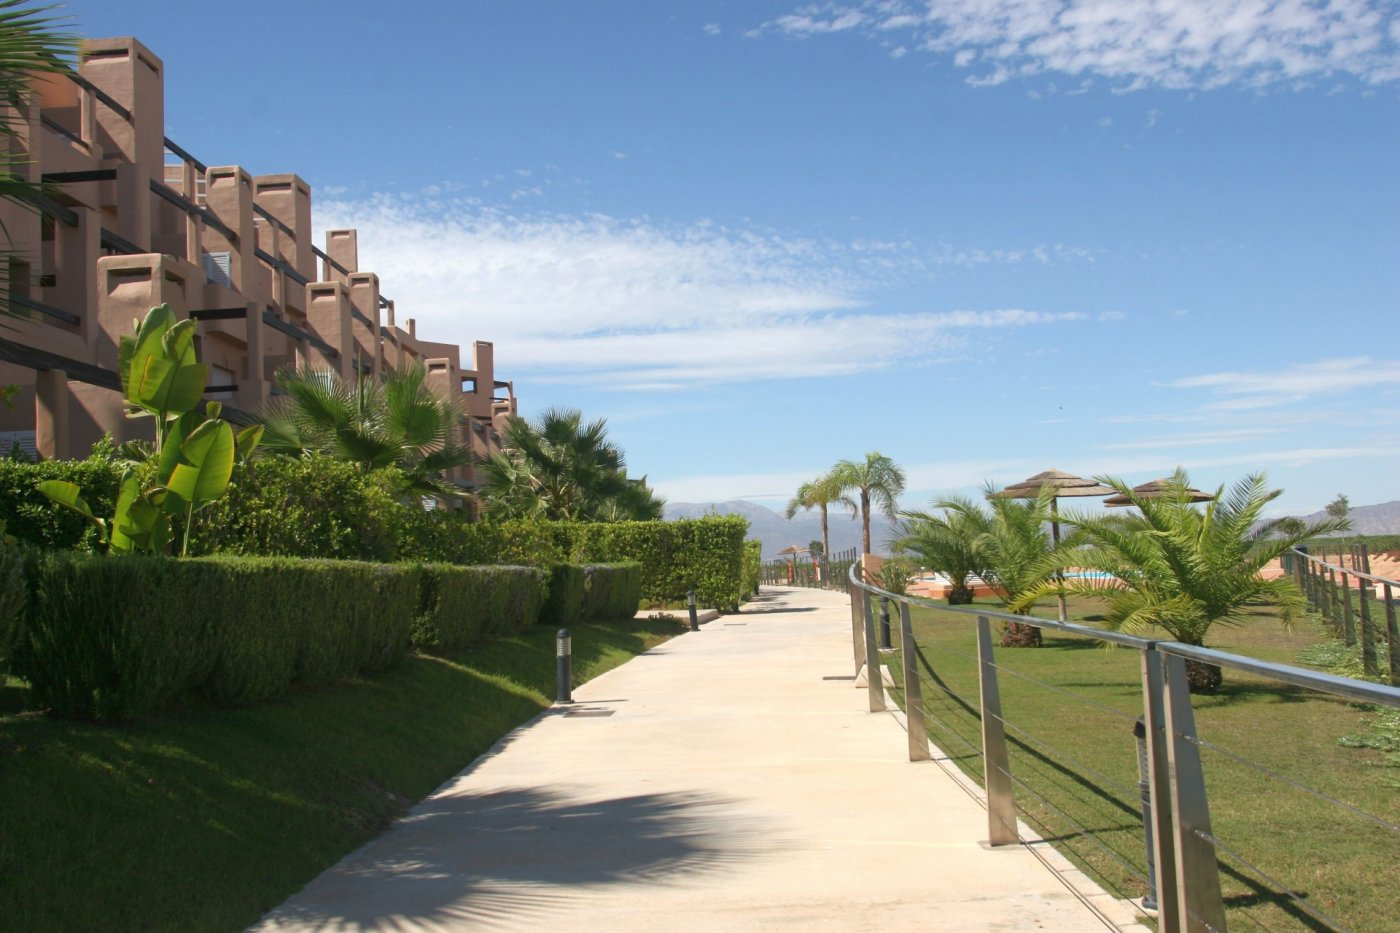 Gallery Image 27 of Bright and South-West facing 2 bedroom apartment in La Isla, with prime views and afternoon sun